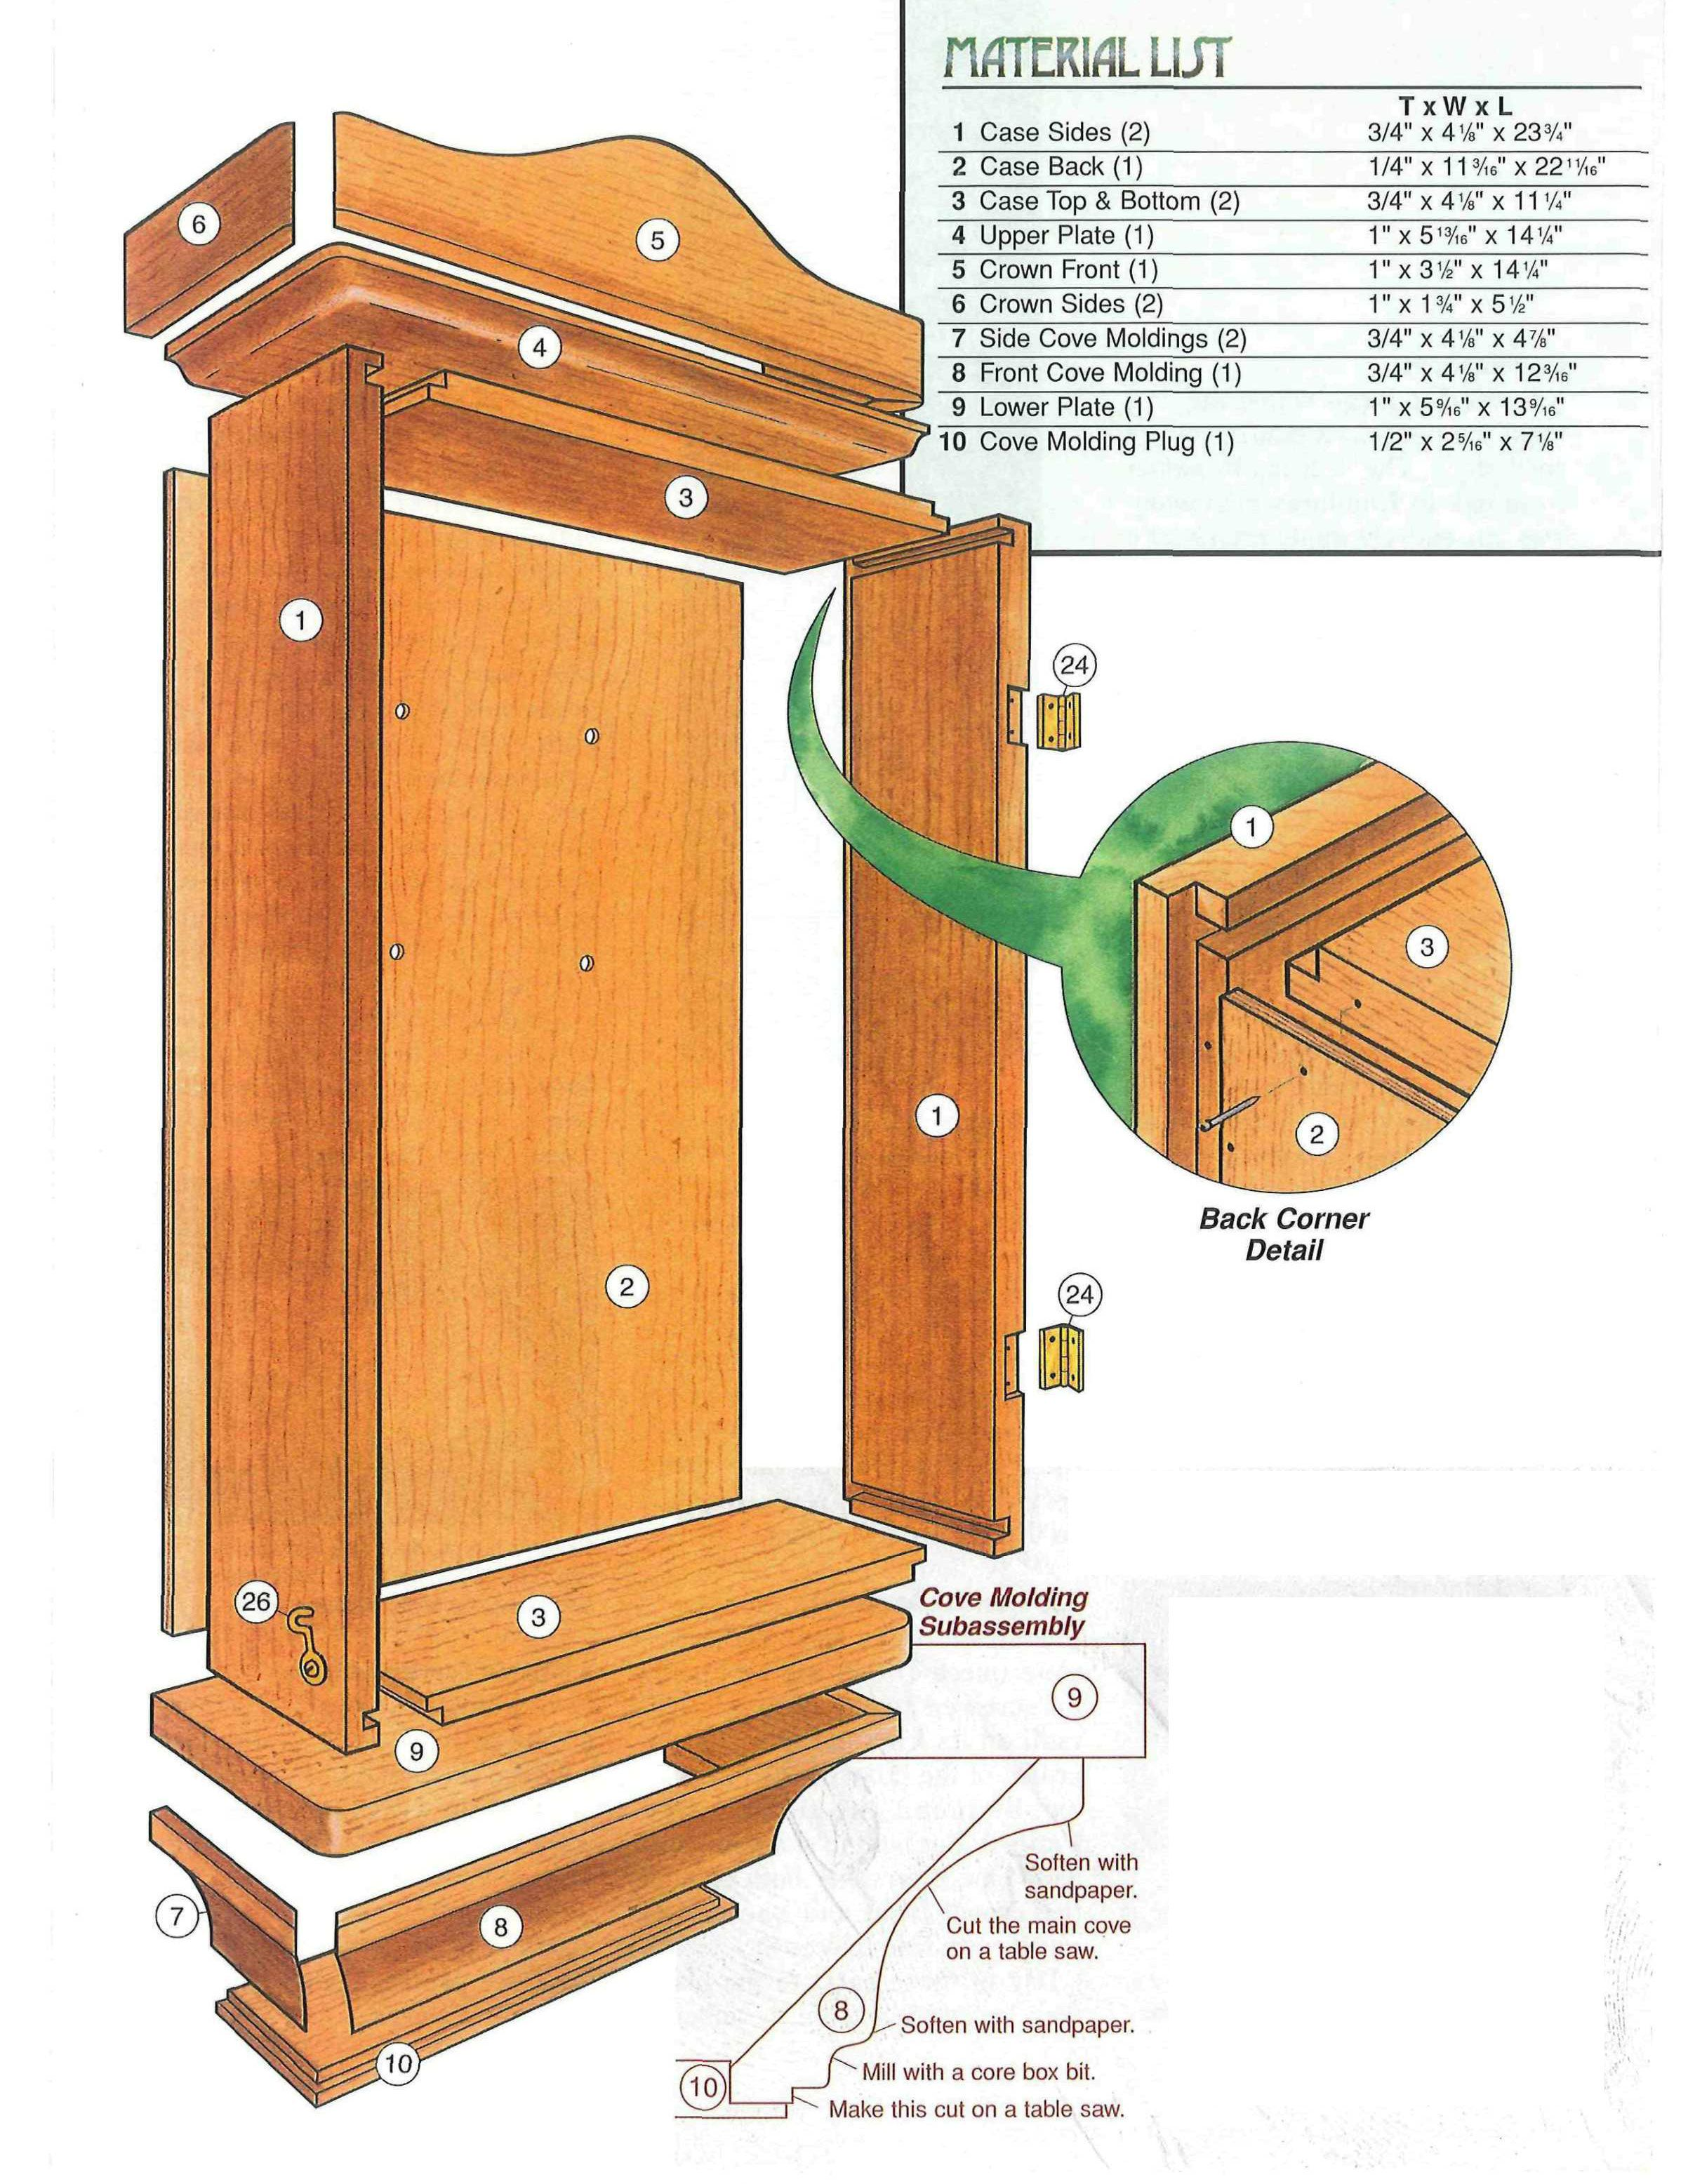 Pin By Chris On Projects To Sell In 2020 Grandfather Clock Kits Craftsman Wall Clocks Wall Clock Plans